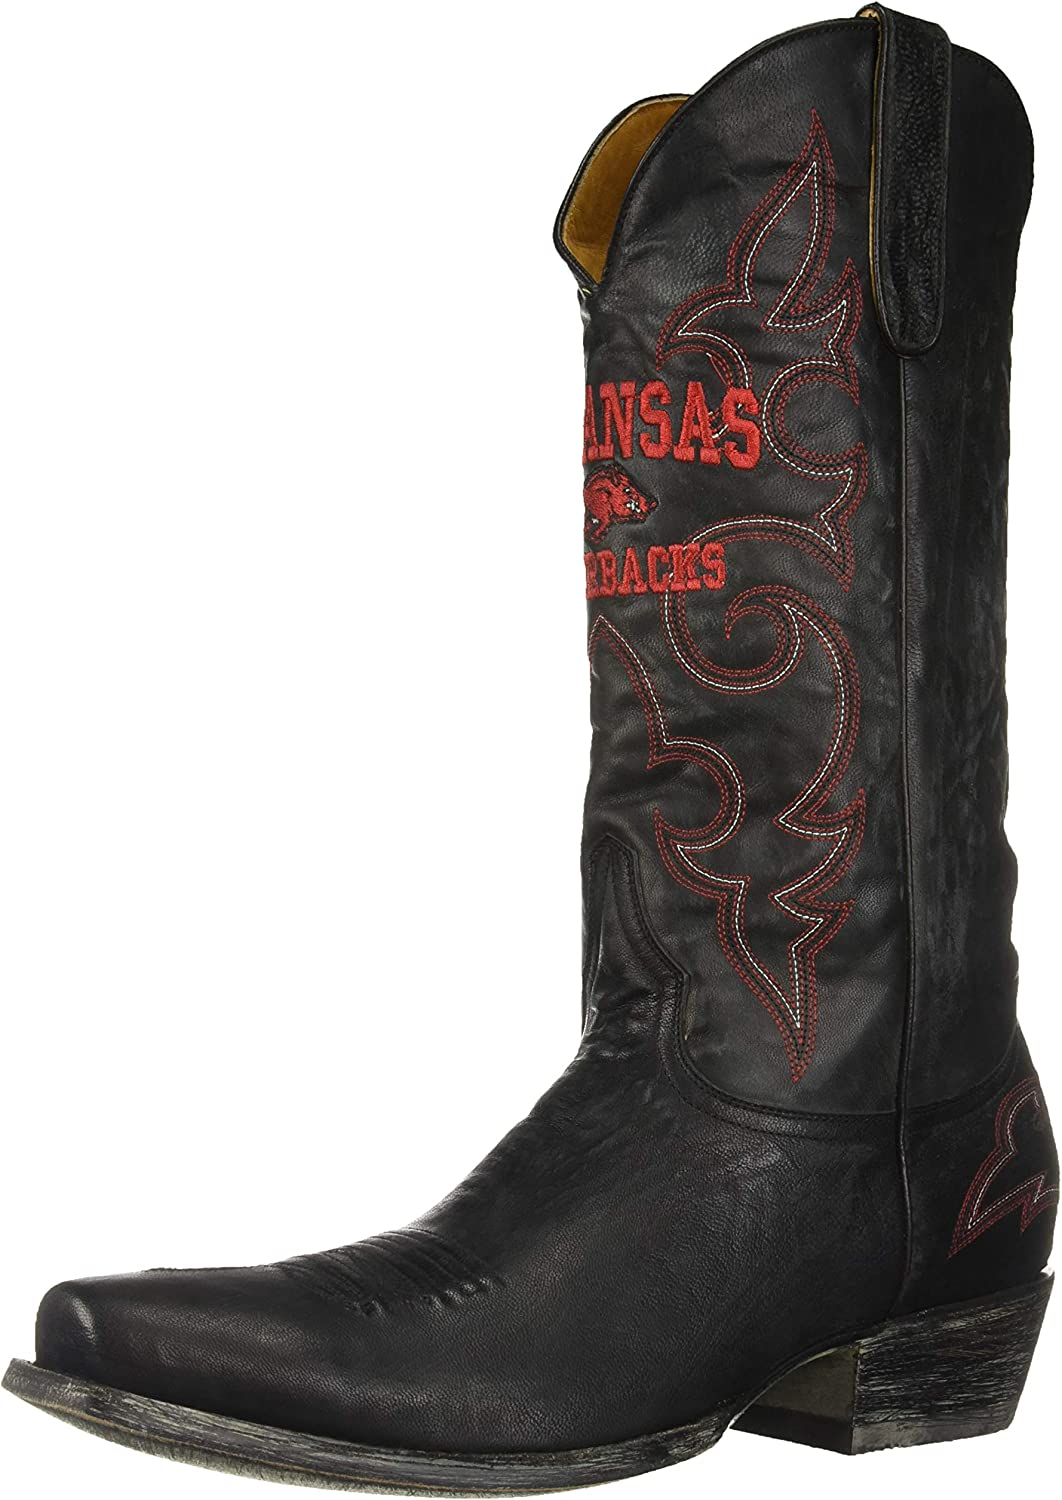 NCAA Arkansas Razorbacks Men's Board Room Style Boots